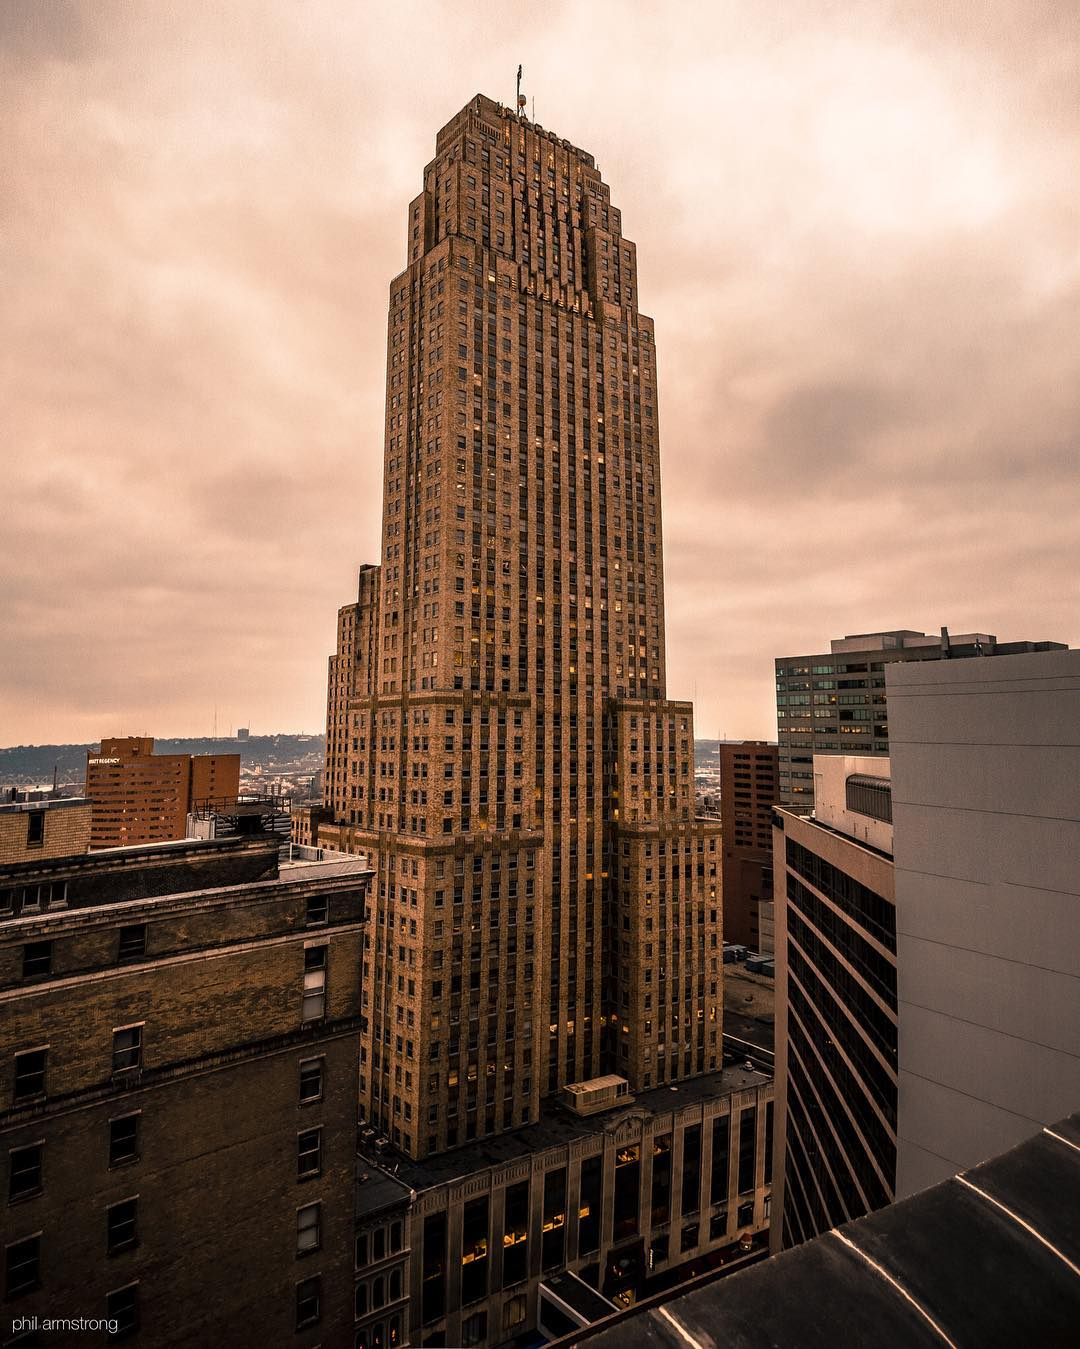 Image: IG user @cincyphil / Post: I stood atop the former Union Trust to glimpse the Carew from an angle I've never seen before. Three exposures had to be combined because I couldn't fit it all into a single frame (hence the distortion). That's how huge that thing is. // Published: 12.17.16